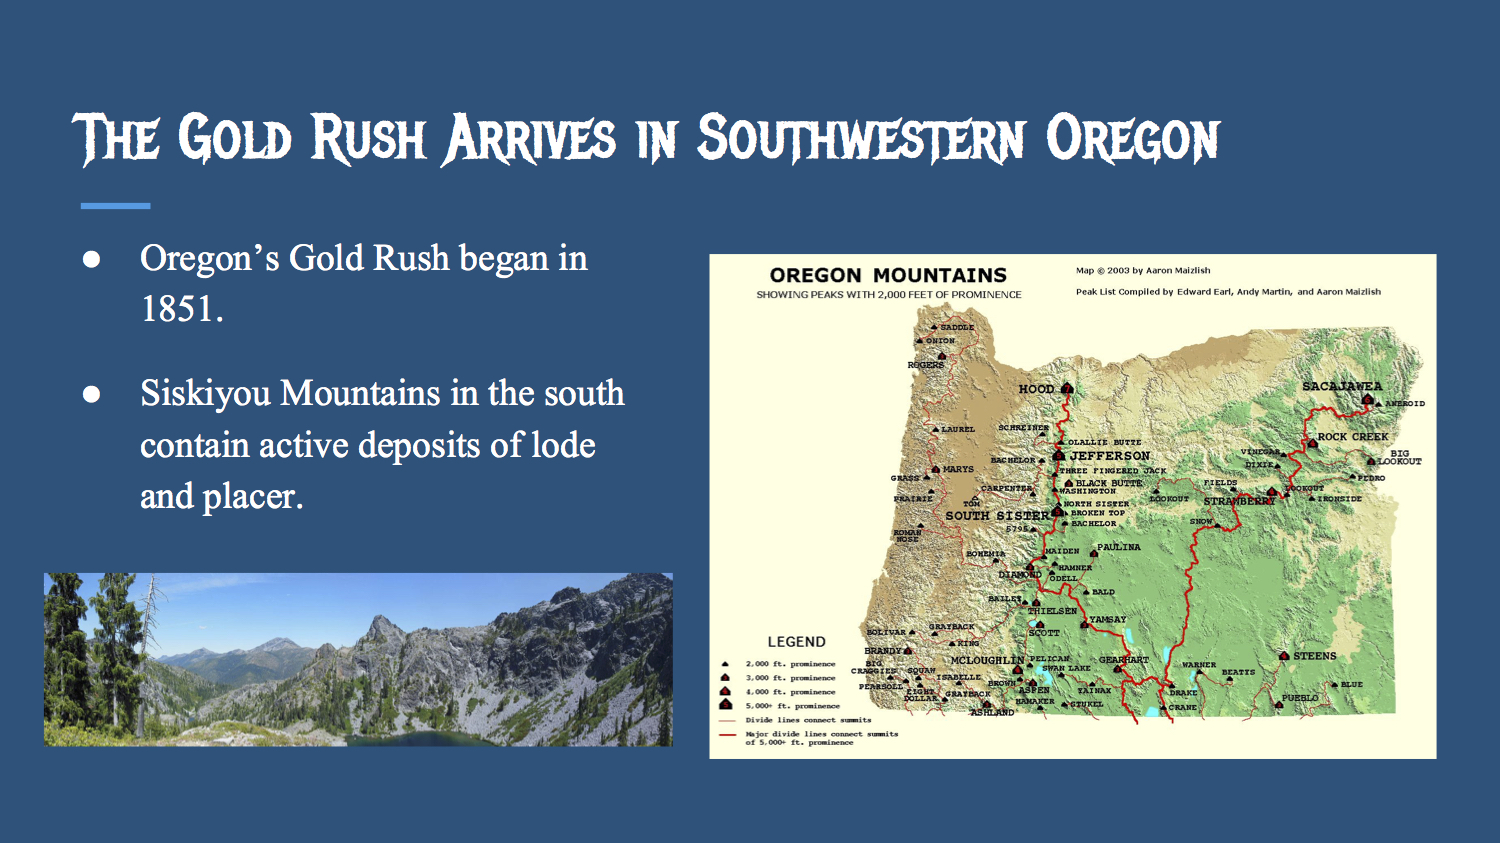 The Gold Rush Arrives In Southwestern Oregon